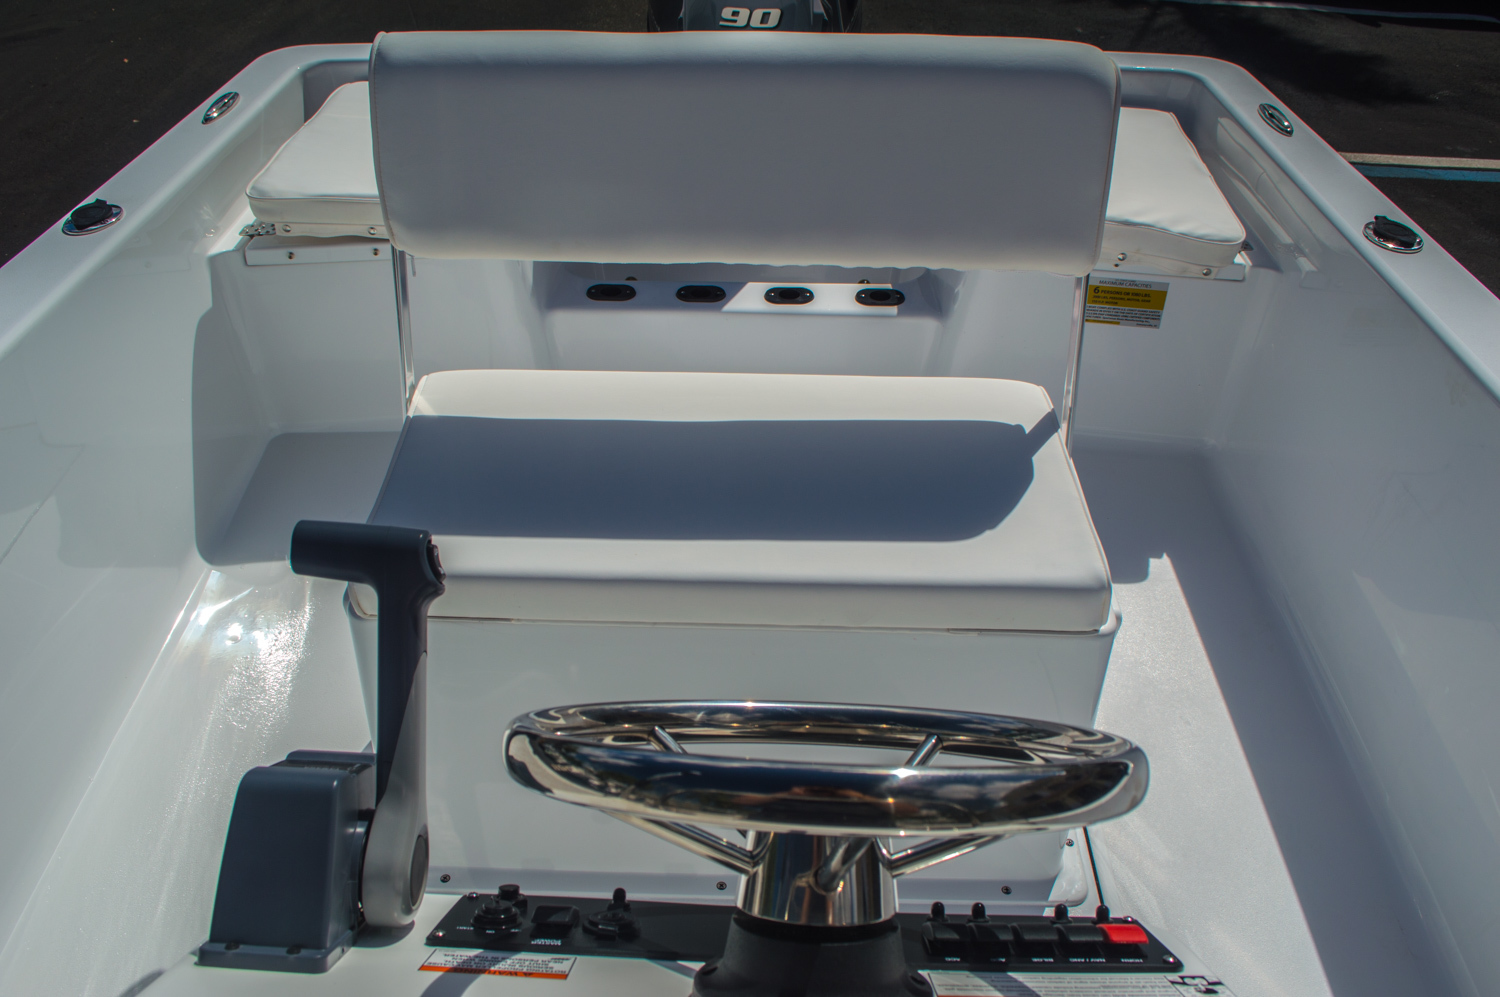 Thumbnail 30 for New 2016 Sportsman 19 Island Reef boat for sale in West Palm Beach, FL